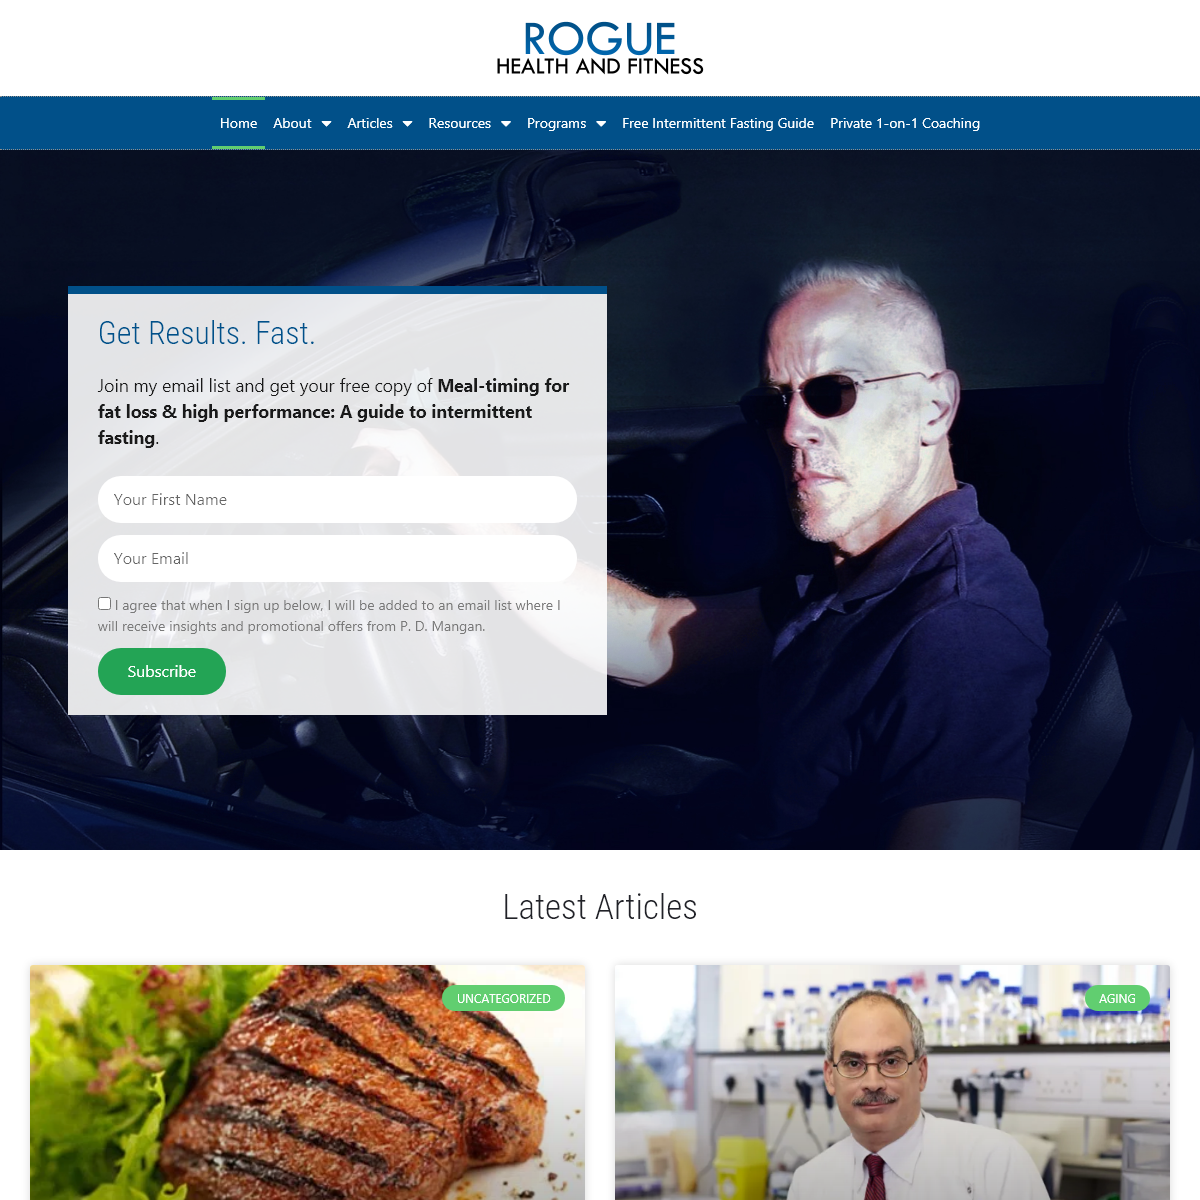 Rogue Health and Fitness